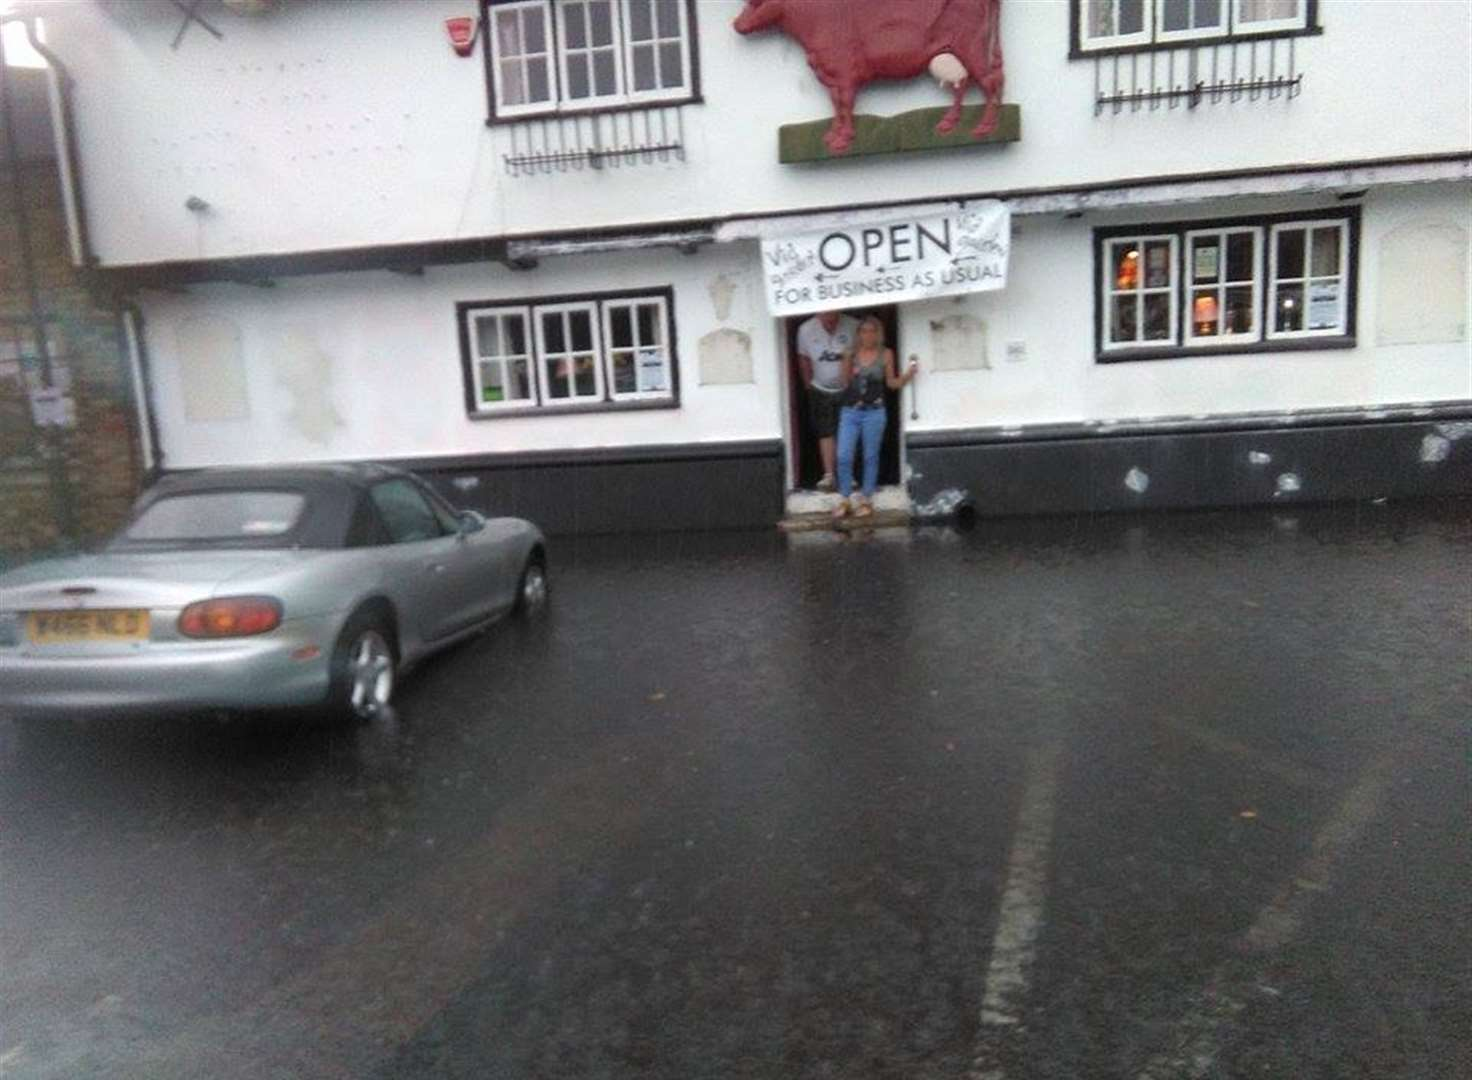 Downpours cause flooding